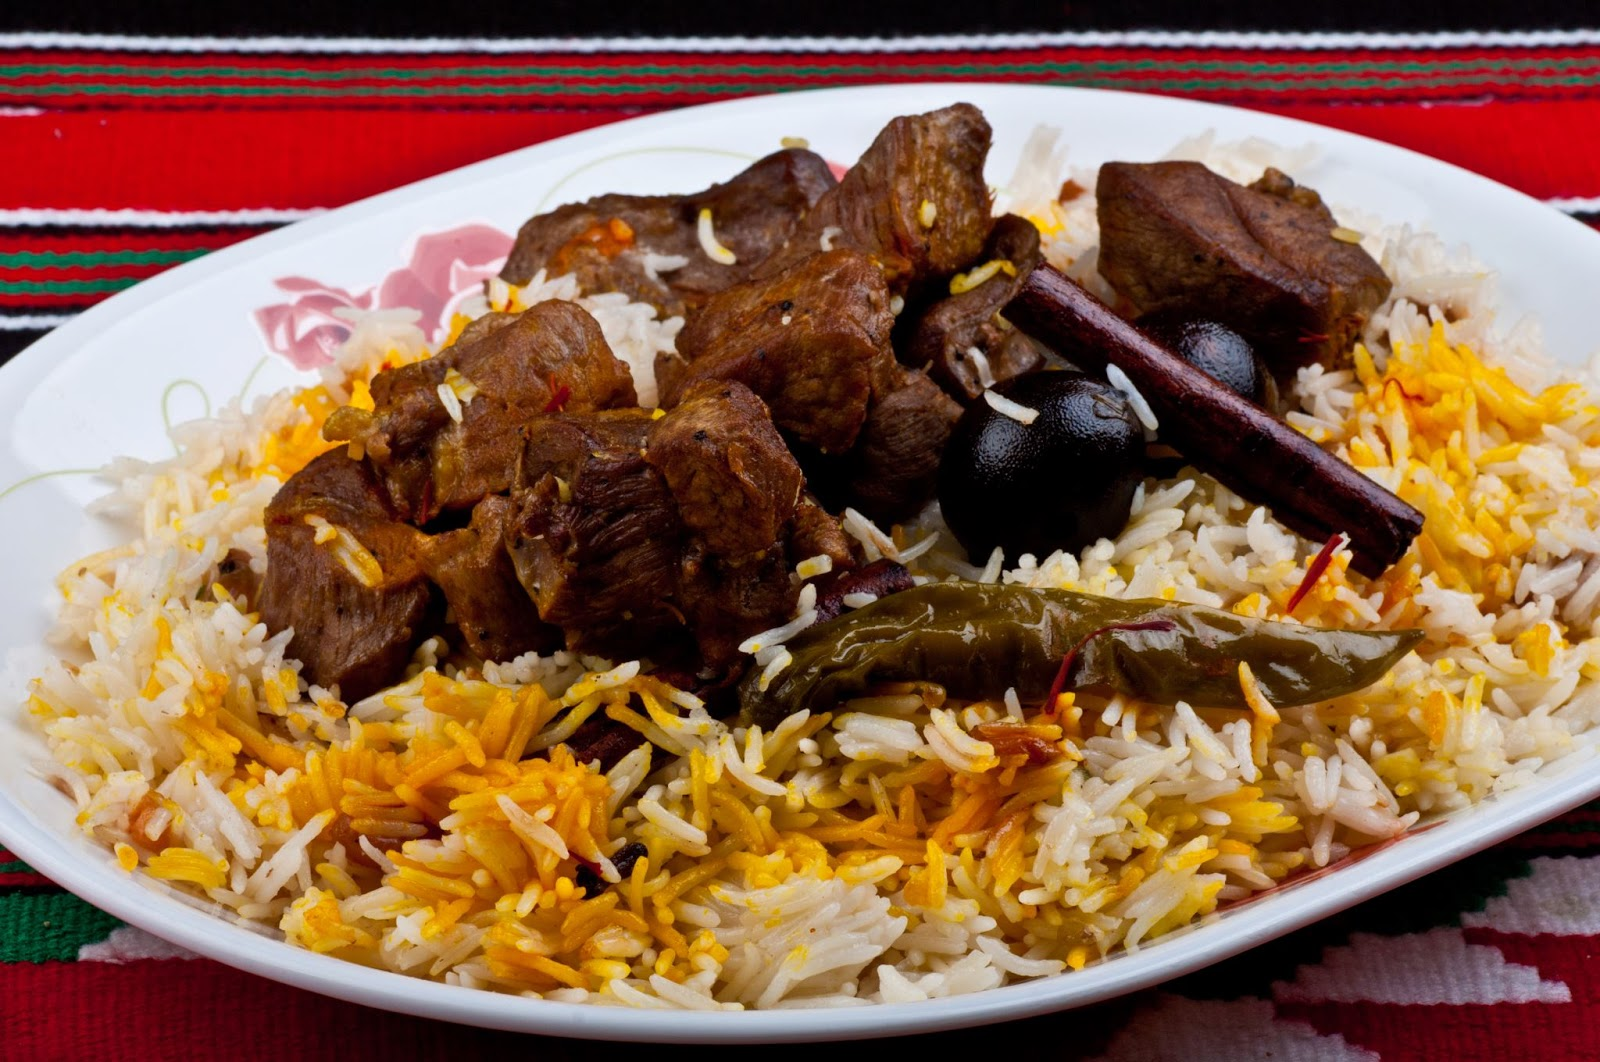 Flavours of asia lamb mandi with saffron basmati rice and raisins lamb mandi with saffron basmati rice and raisins chef ammar alis recipe for those who love arabic food forumfinder Images